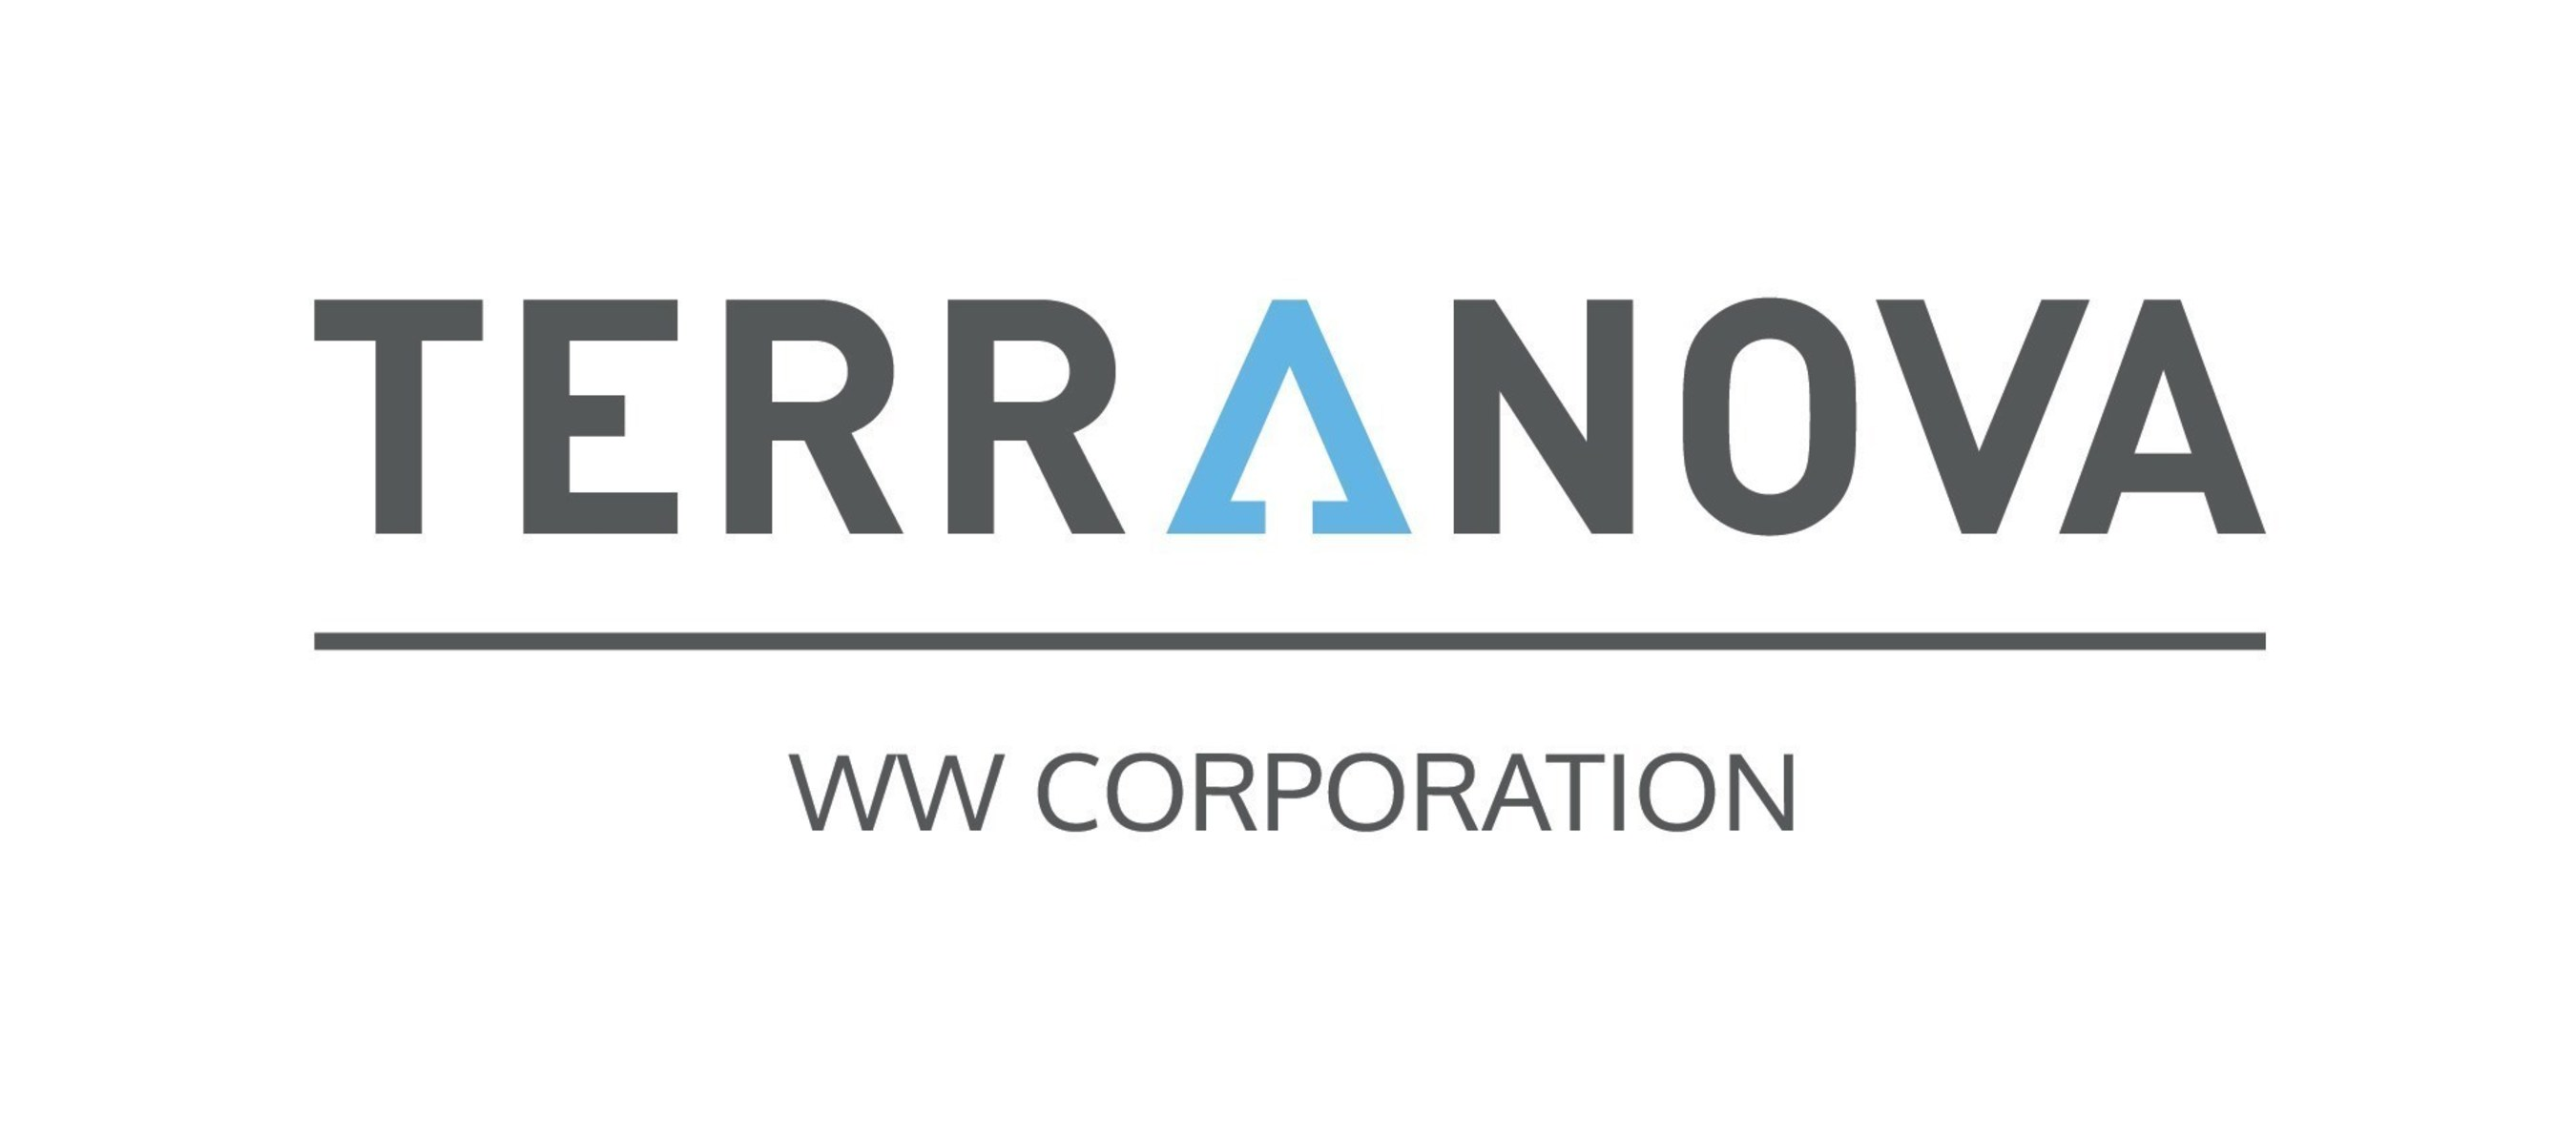 Terranova WW Corporation announces the expansion of its activities with the opening of a new office